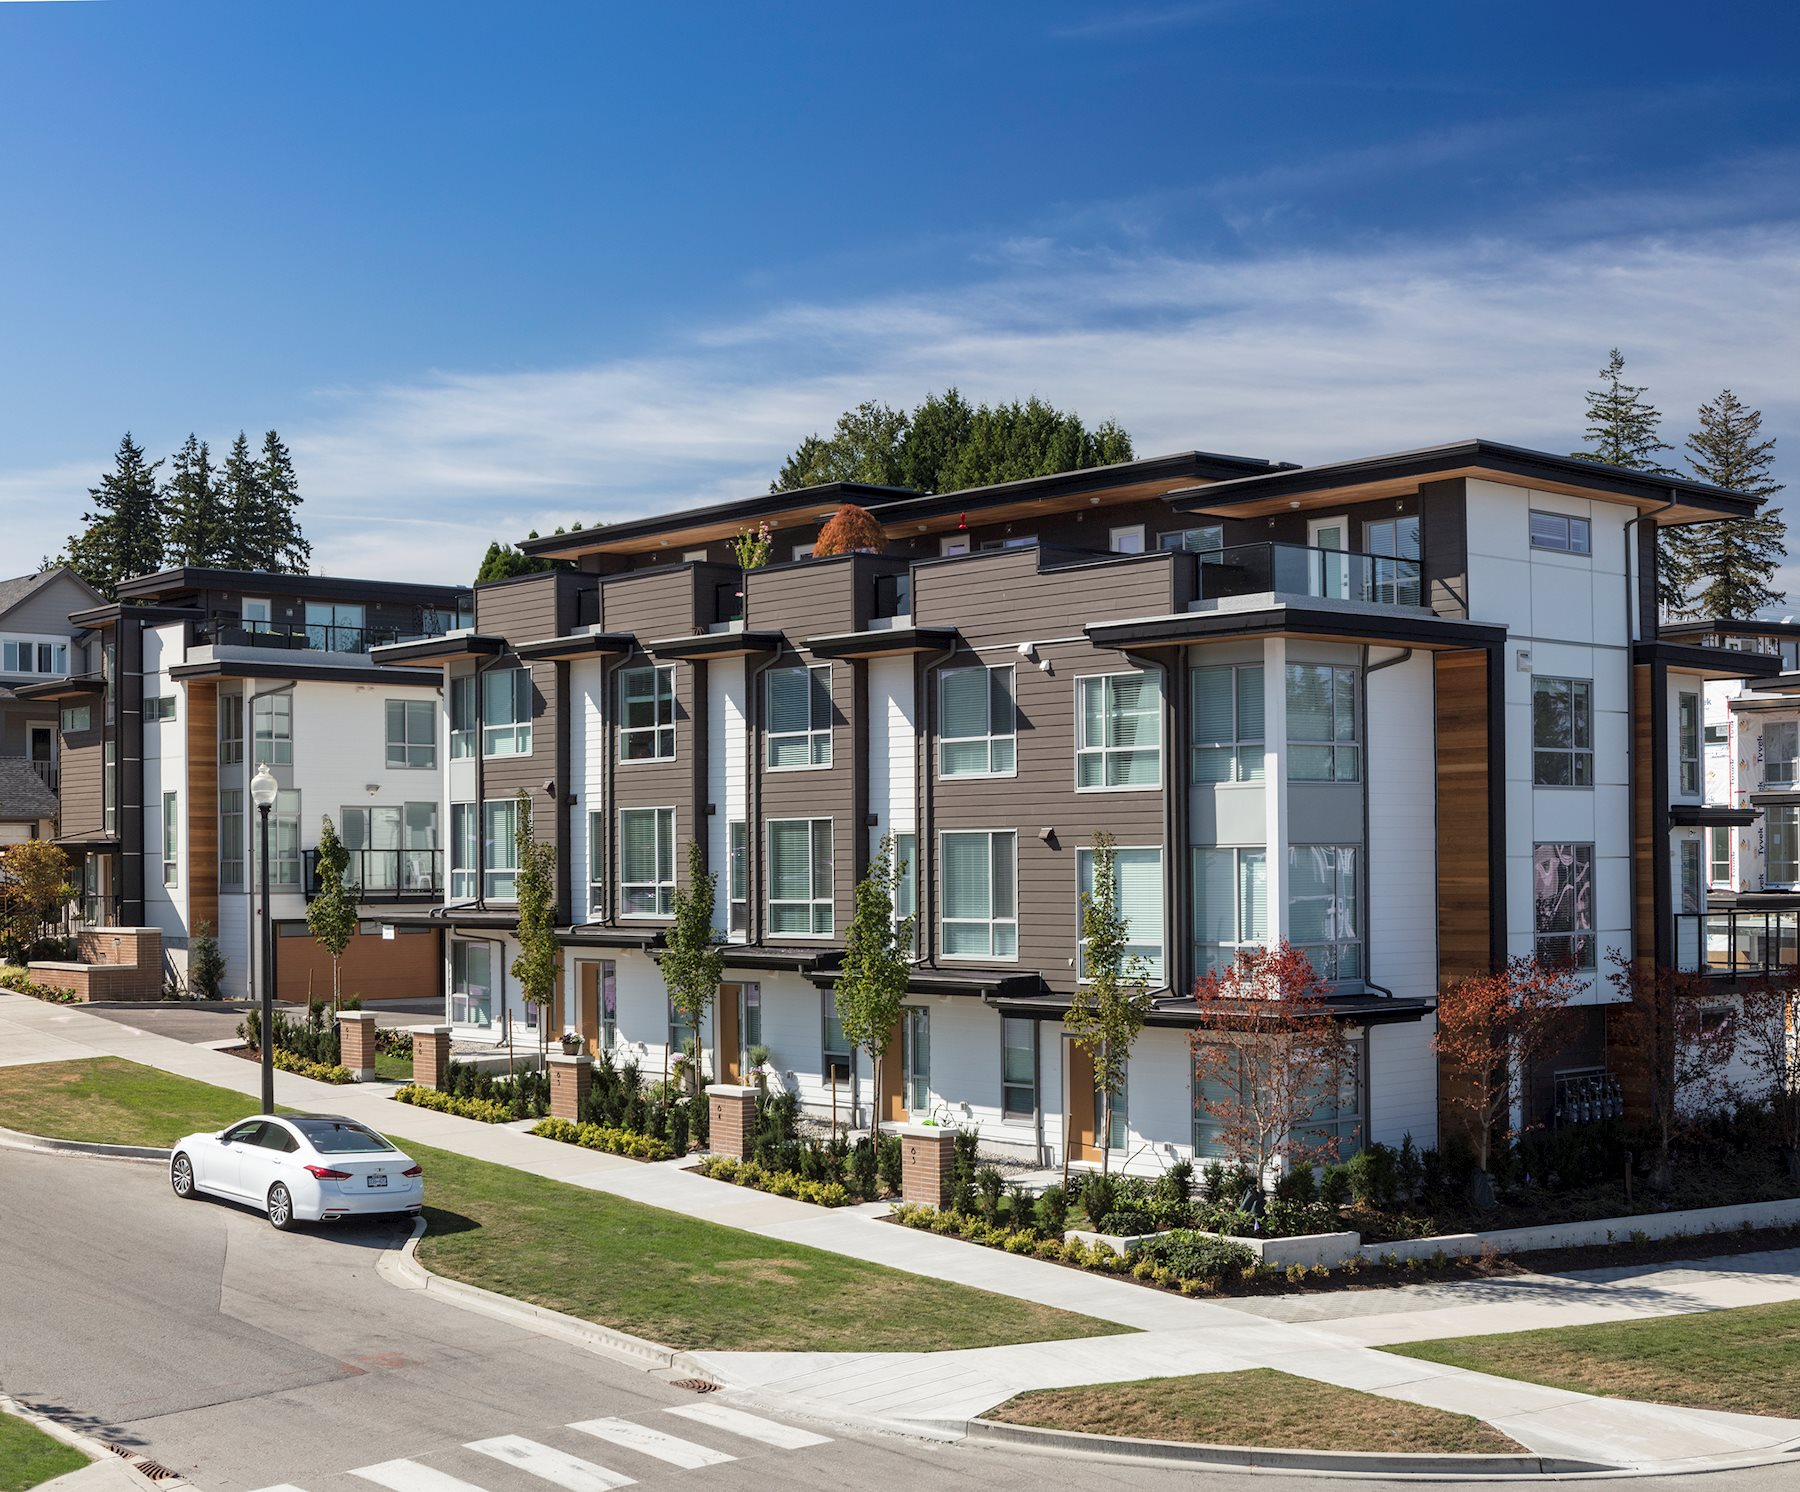 Best Multi-Family Townhouse Development